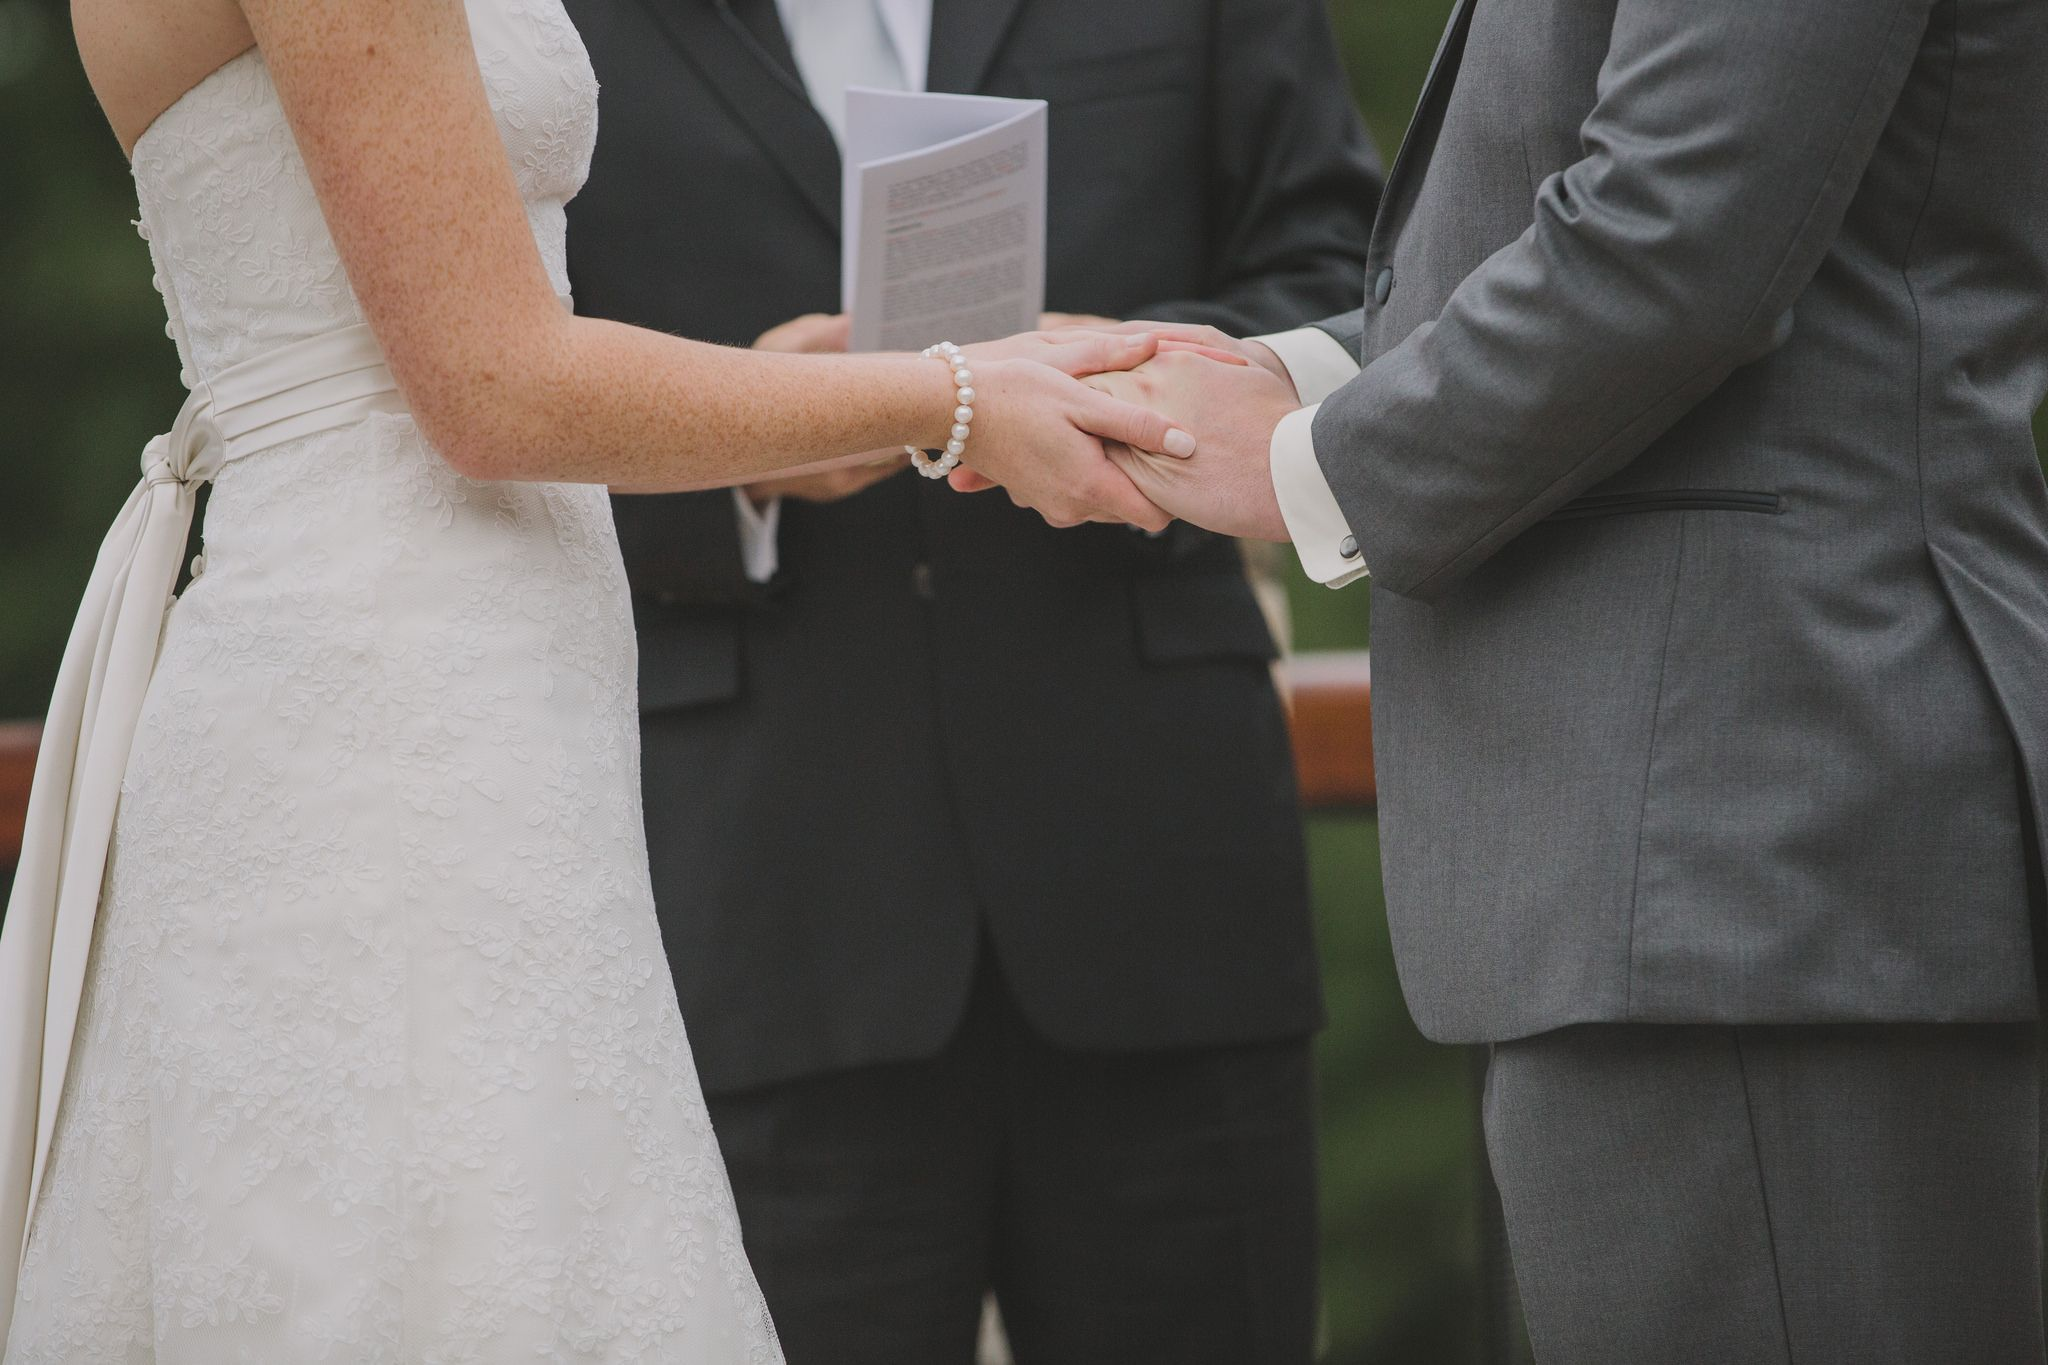 Wedding Vows | Marriage vows, Religious ceremony and Sample wedding vows